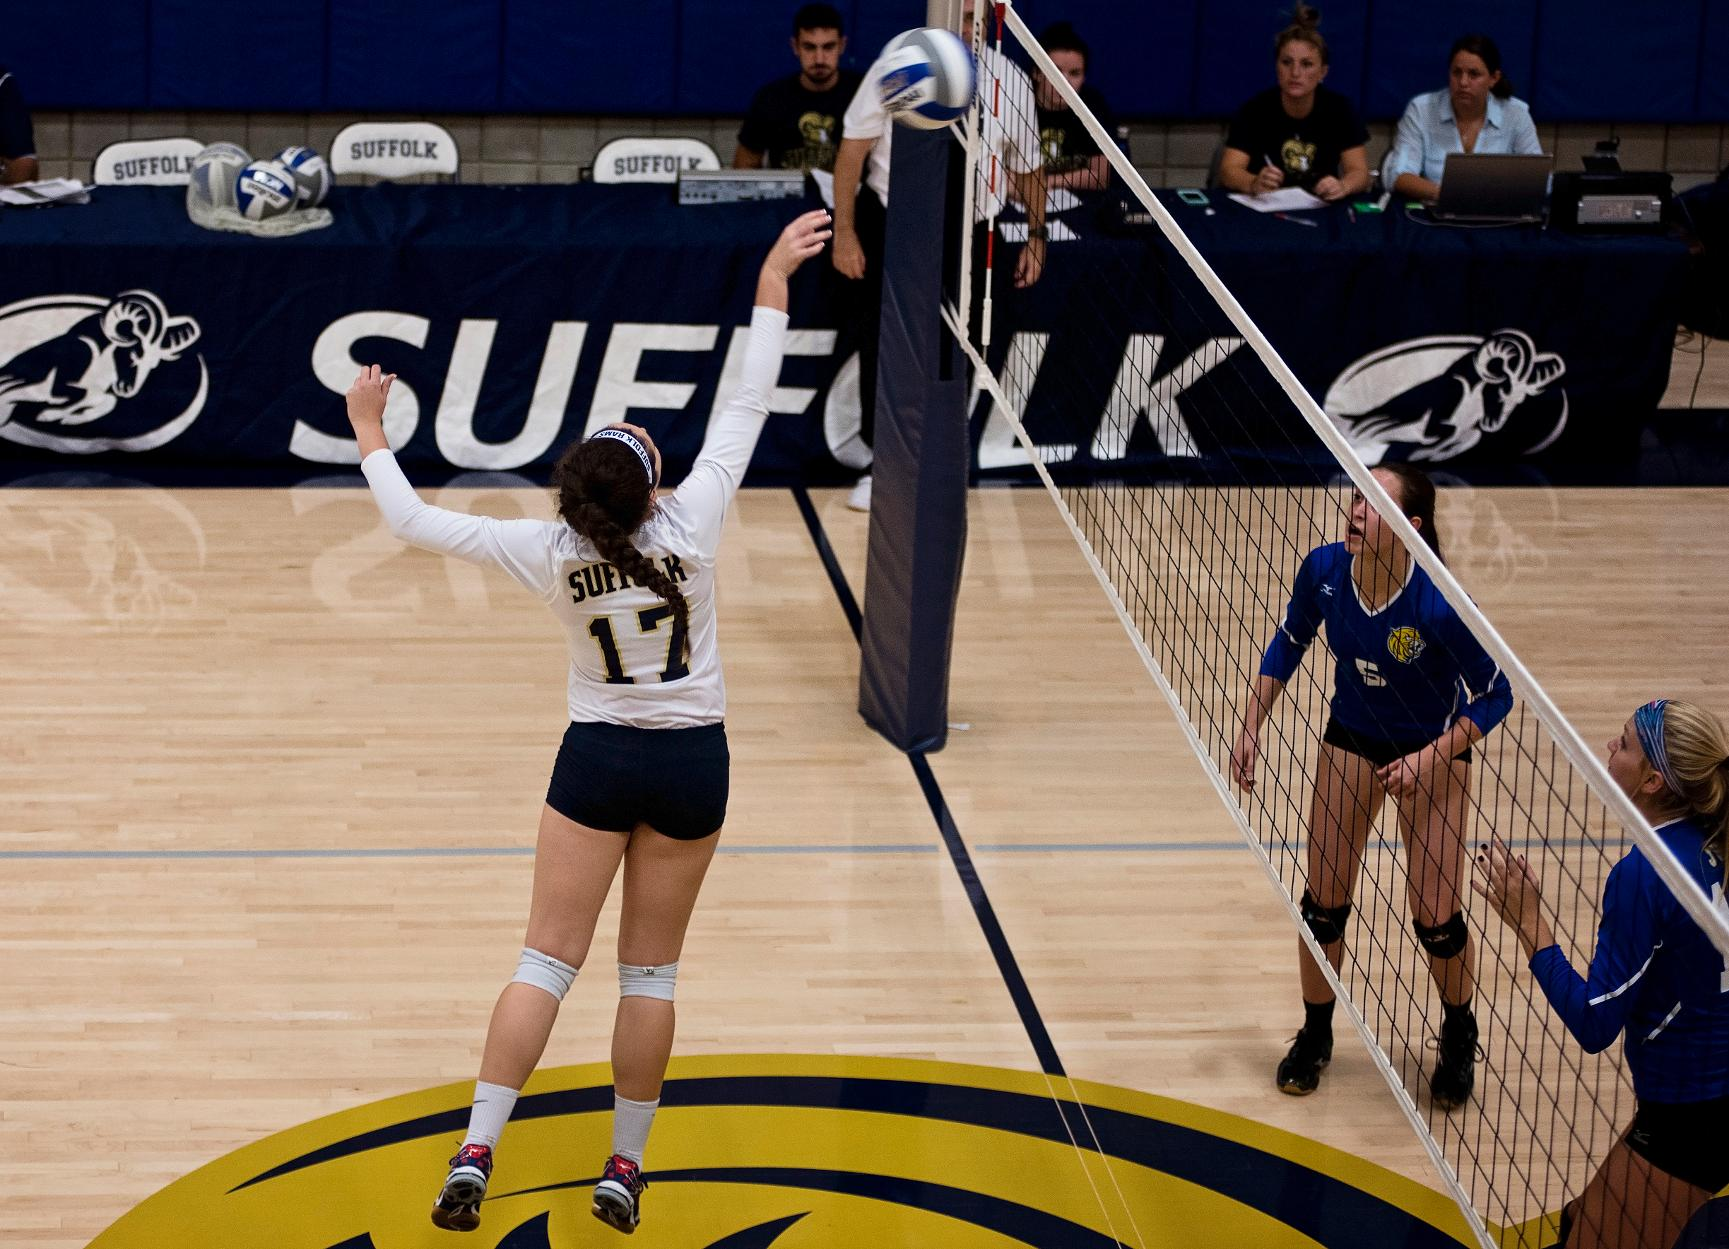 UMass Dartmouth Defeats Volleyball, 3-0